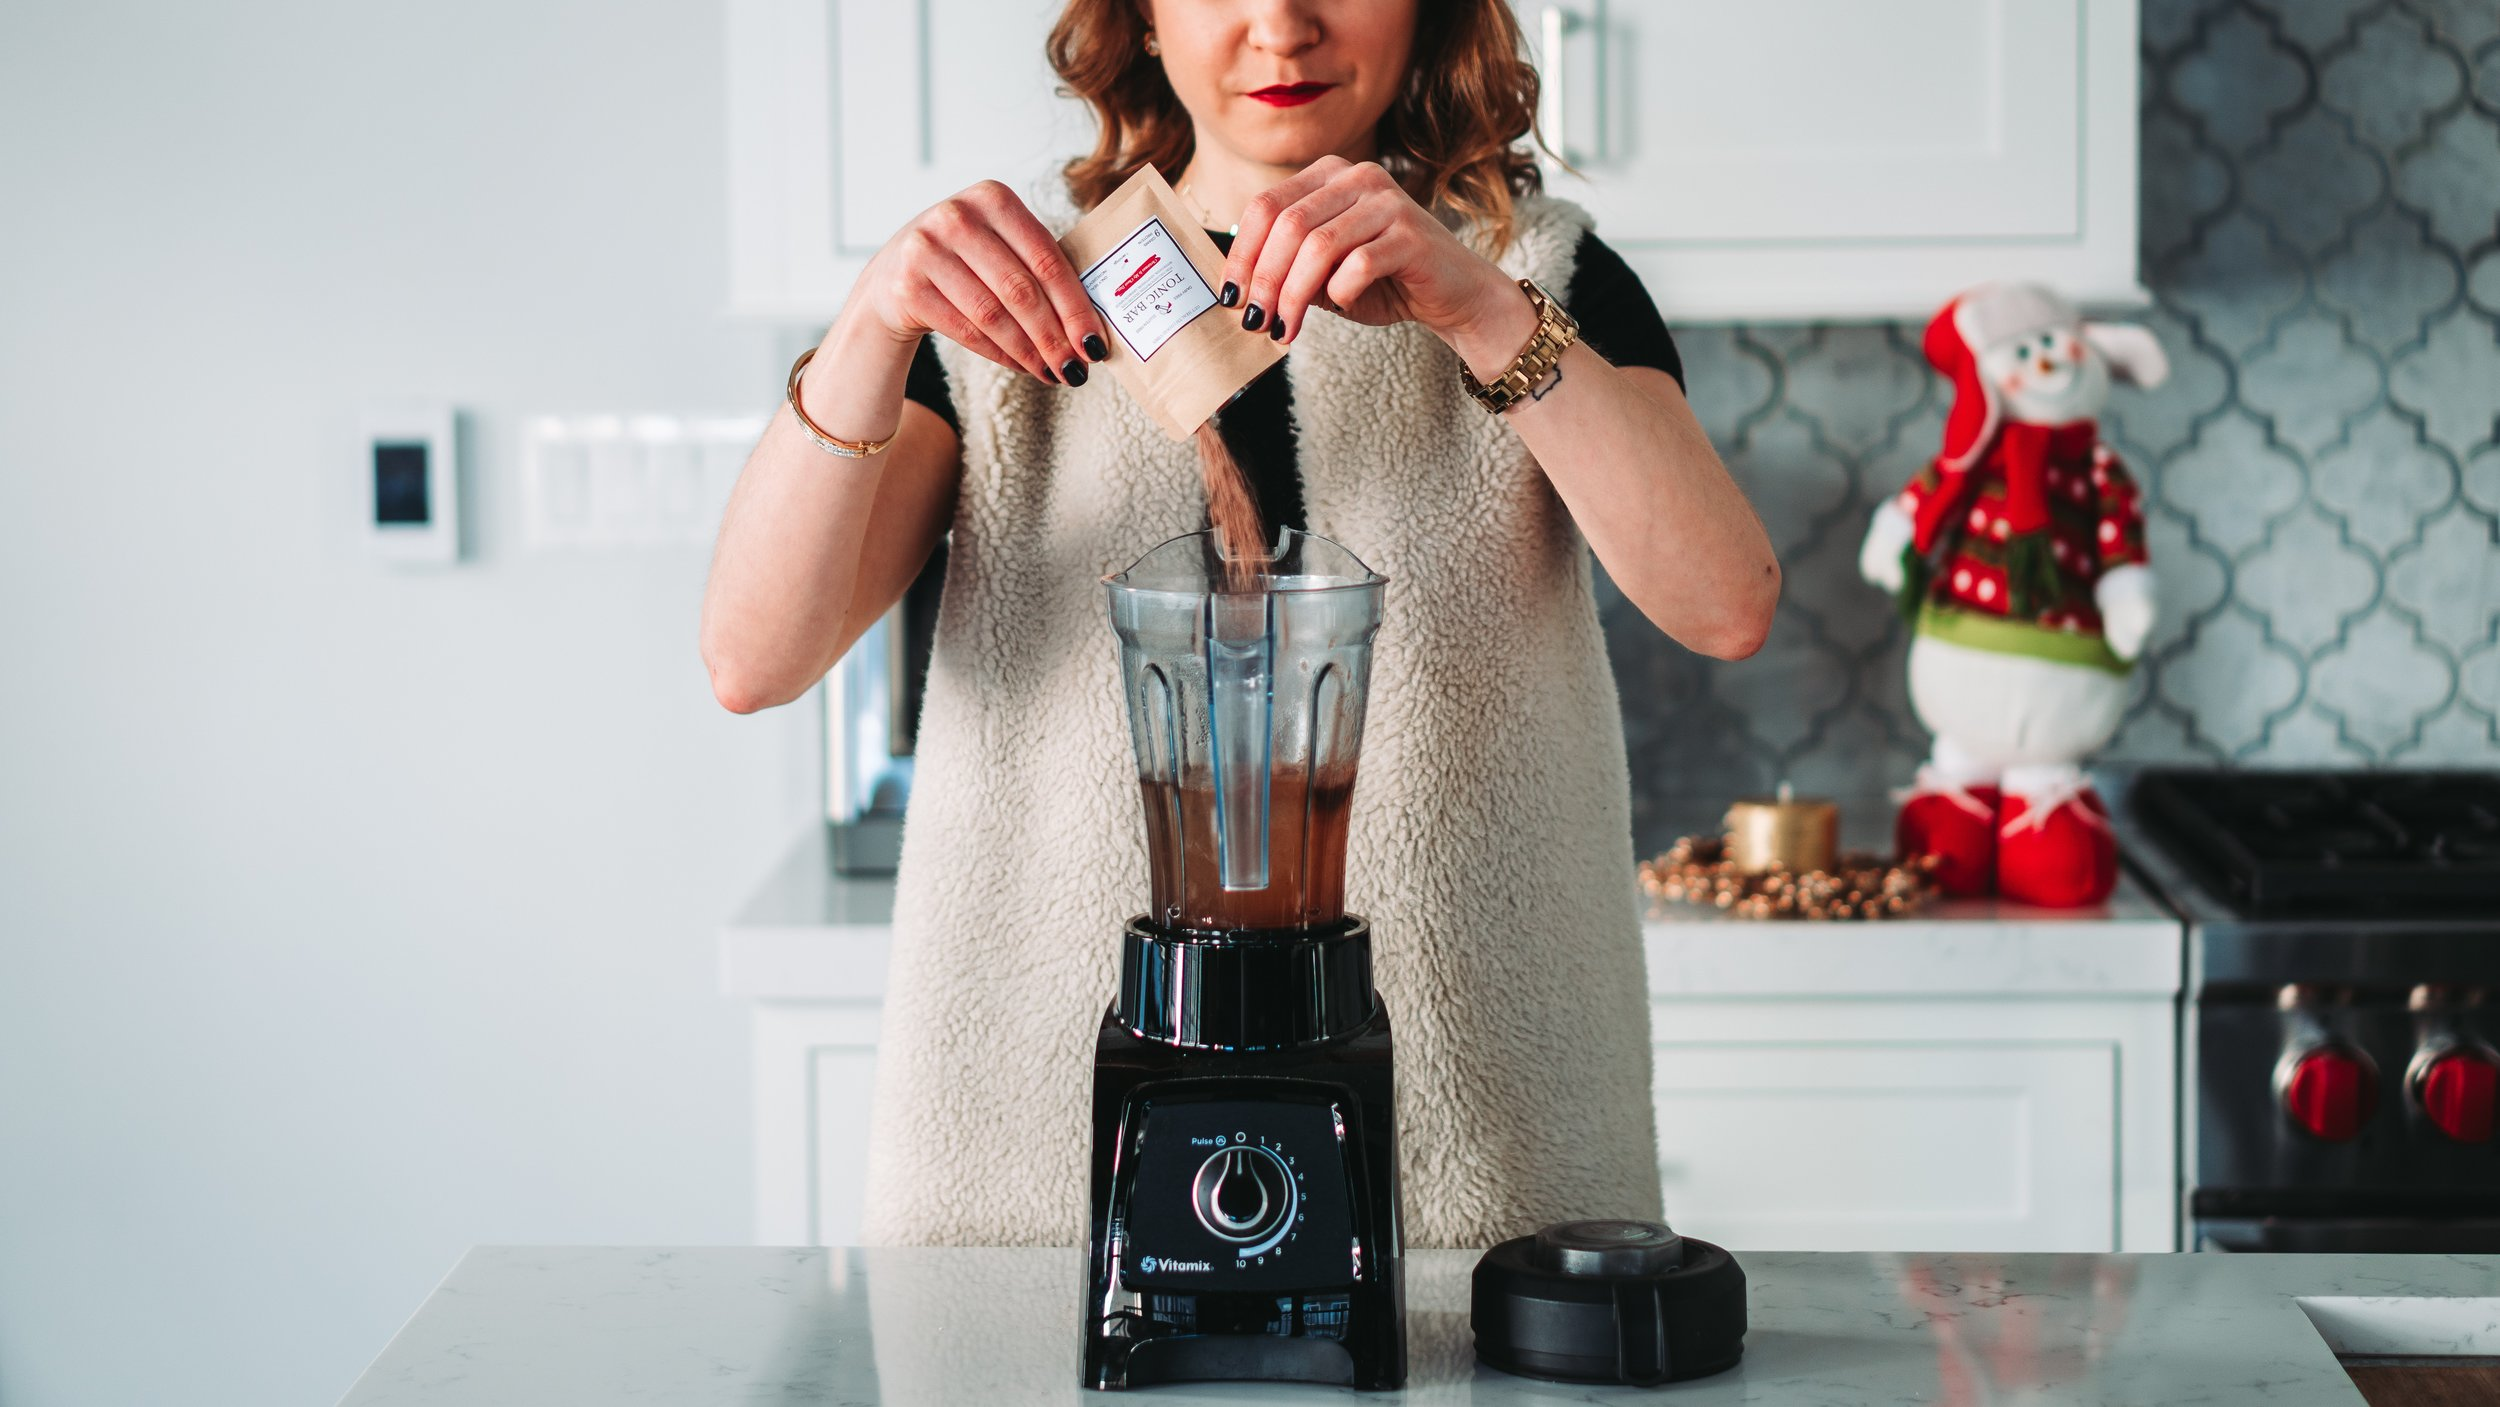 Martha Chase's 'blender experiment' has a place in scientific history